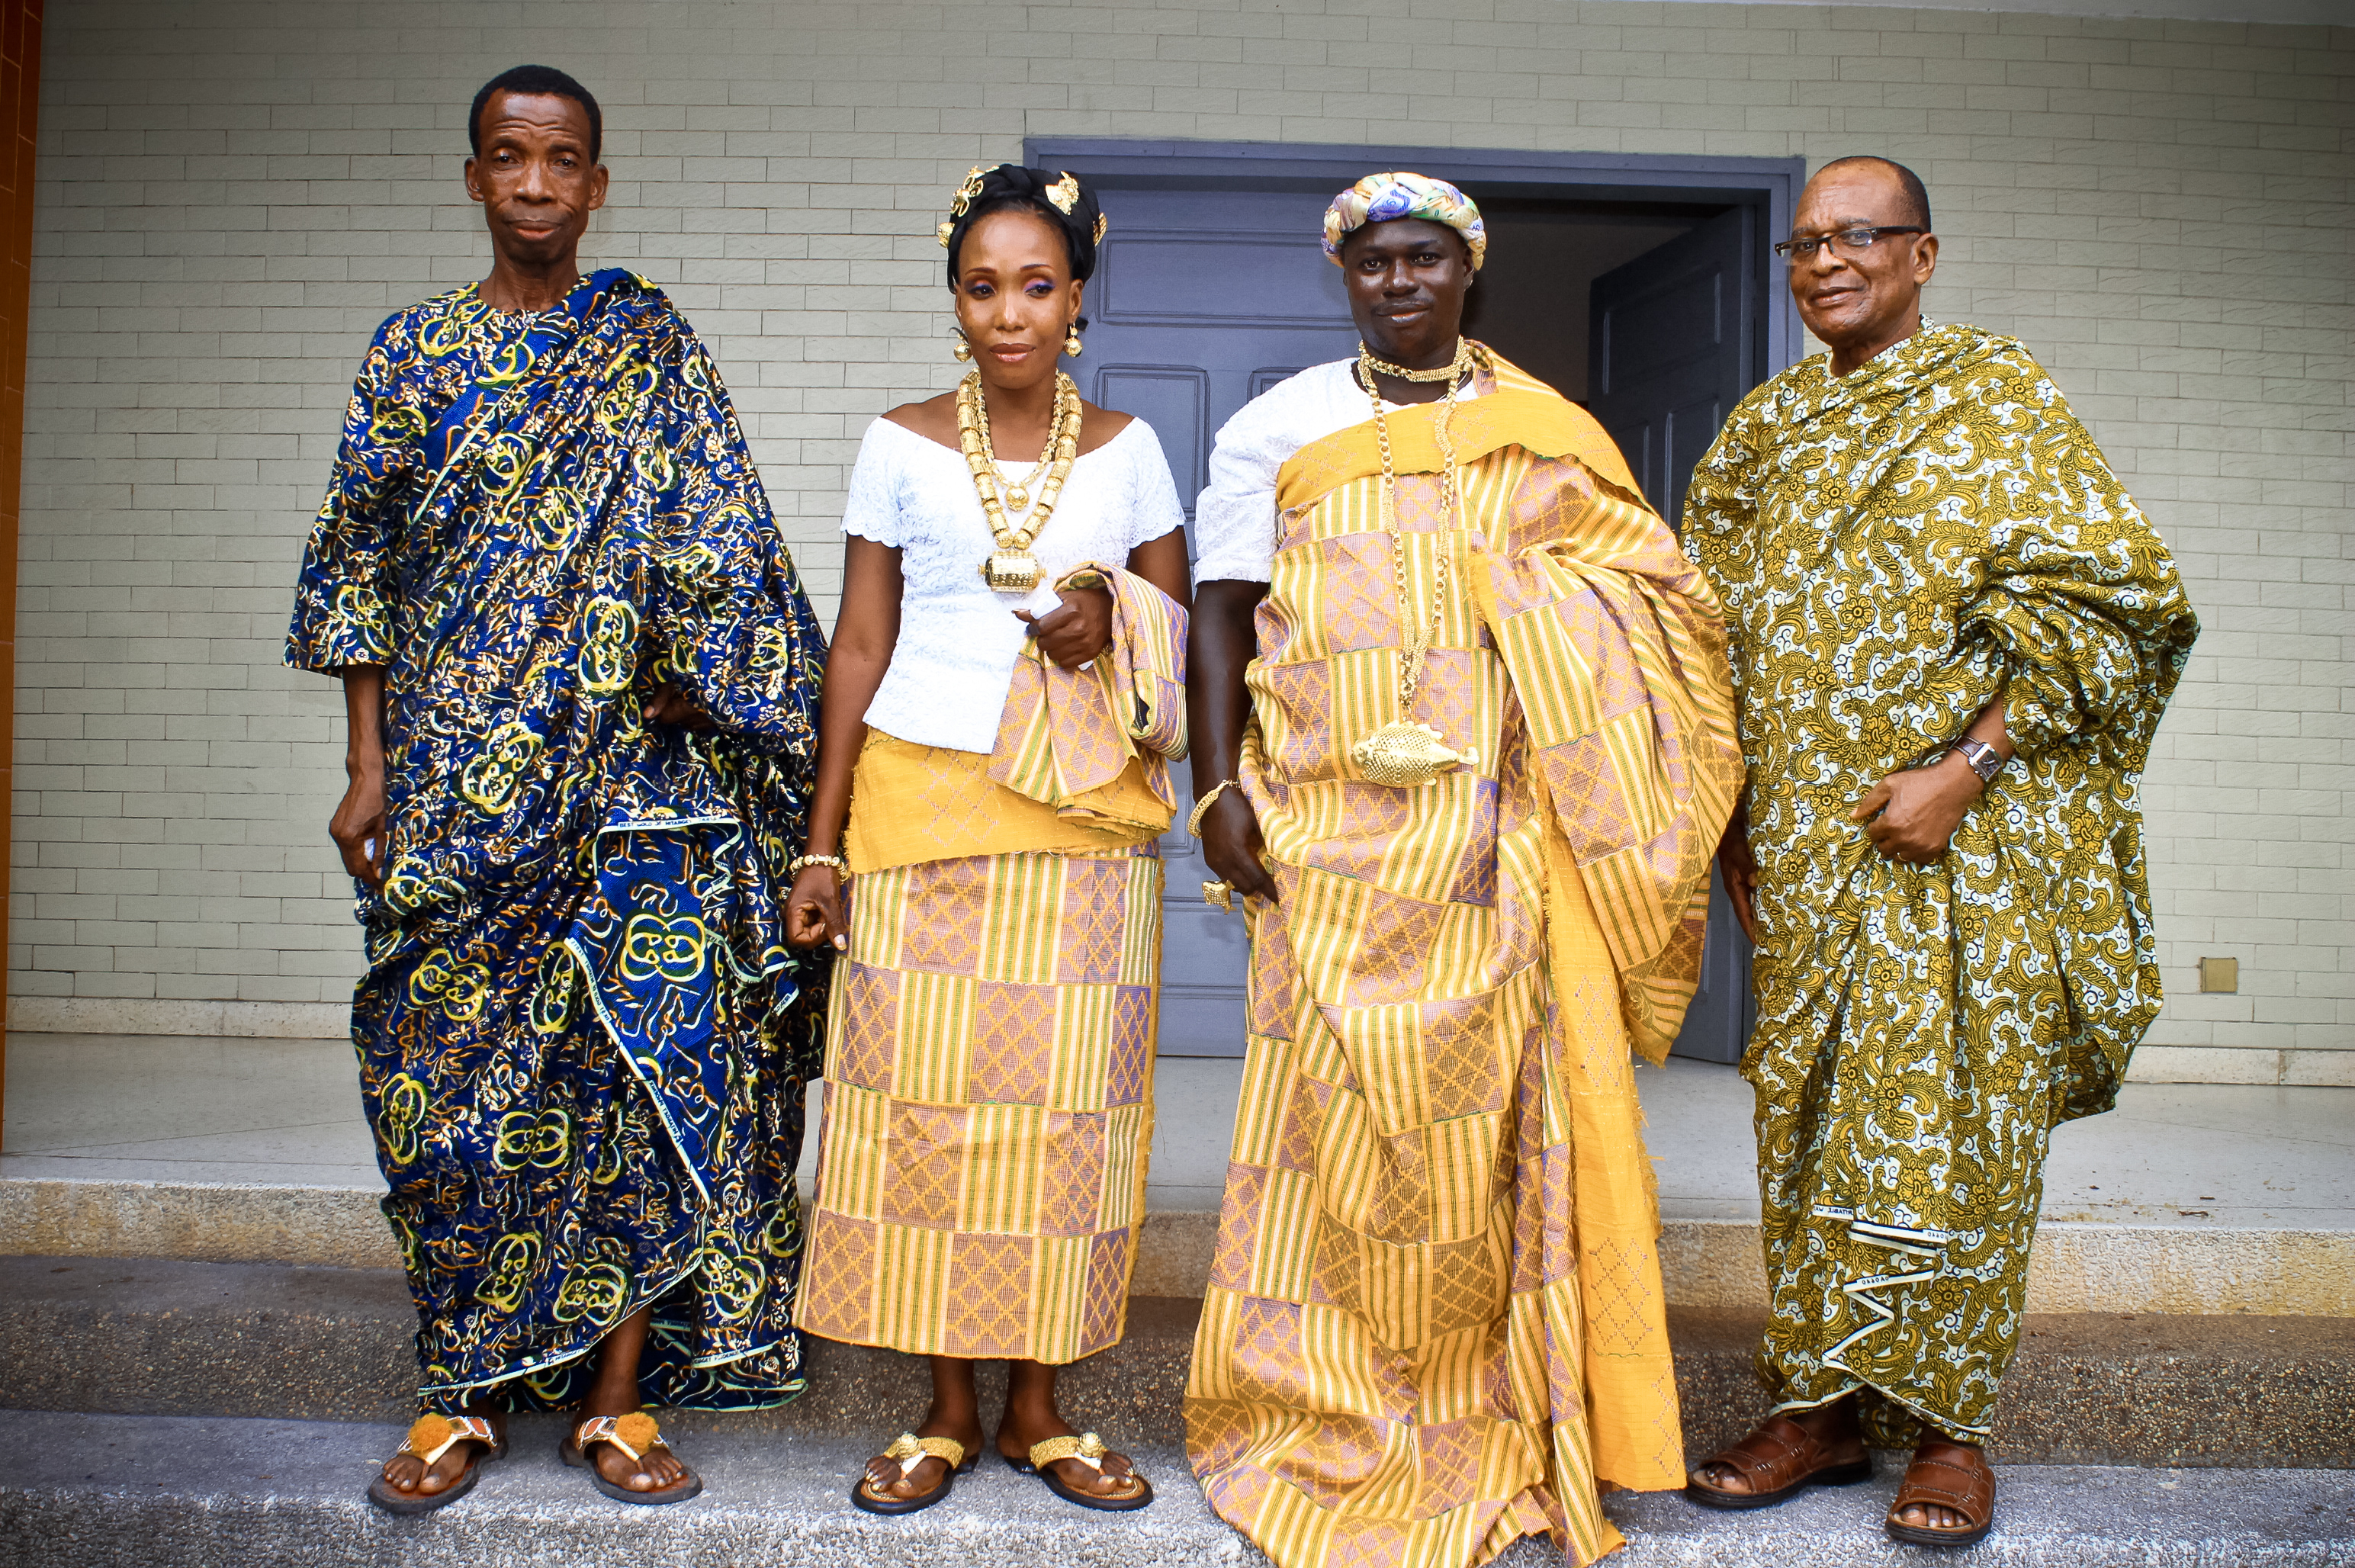 Ghana's Kente Cloth, A Delight Of Color And Patterns